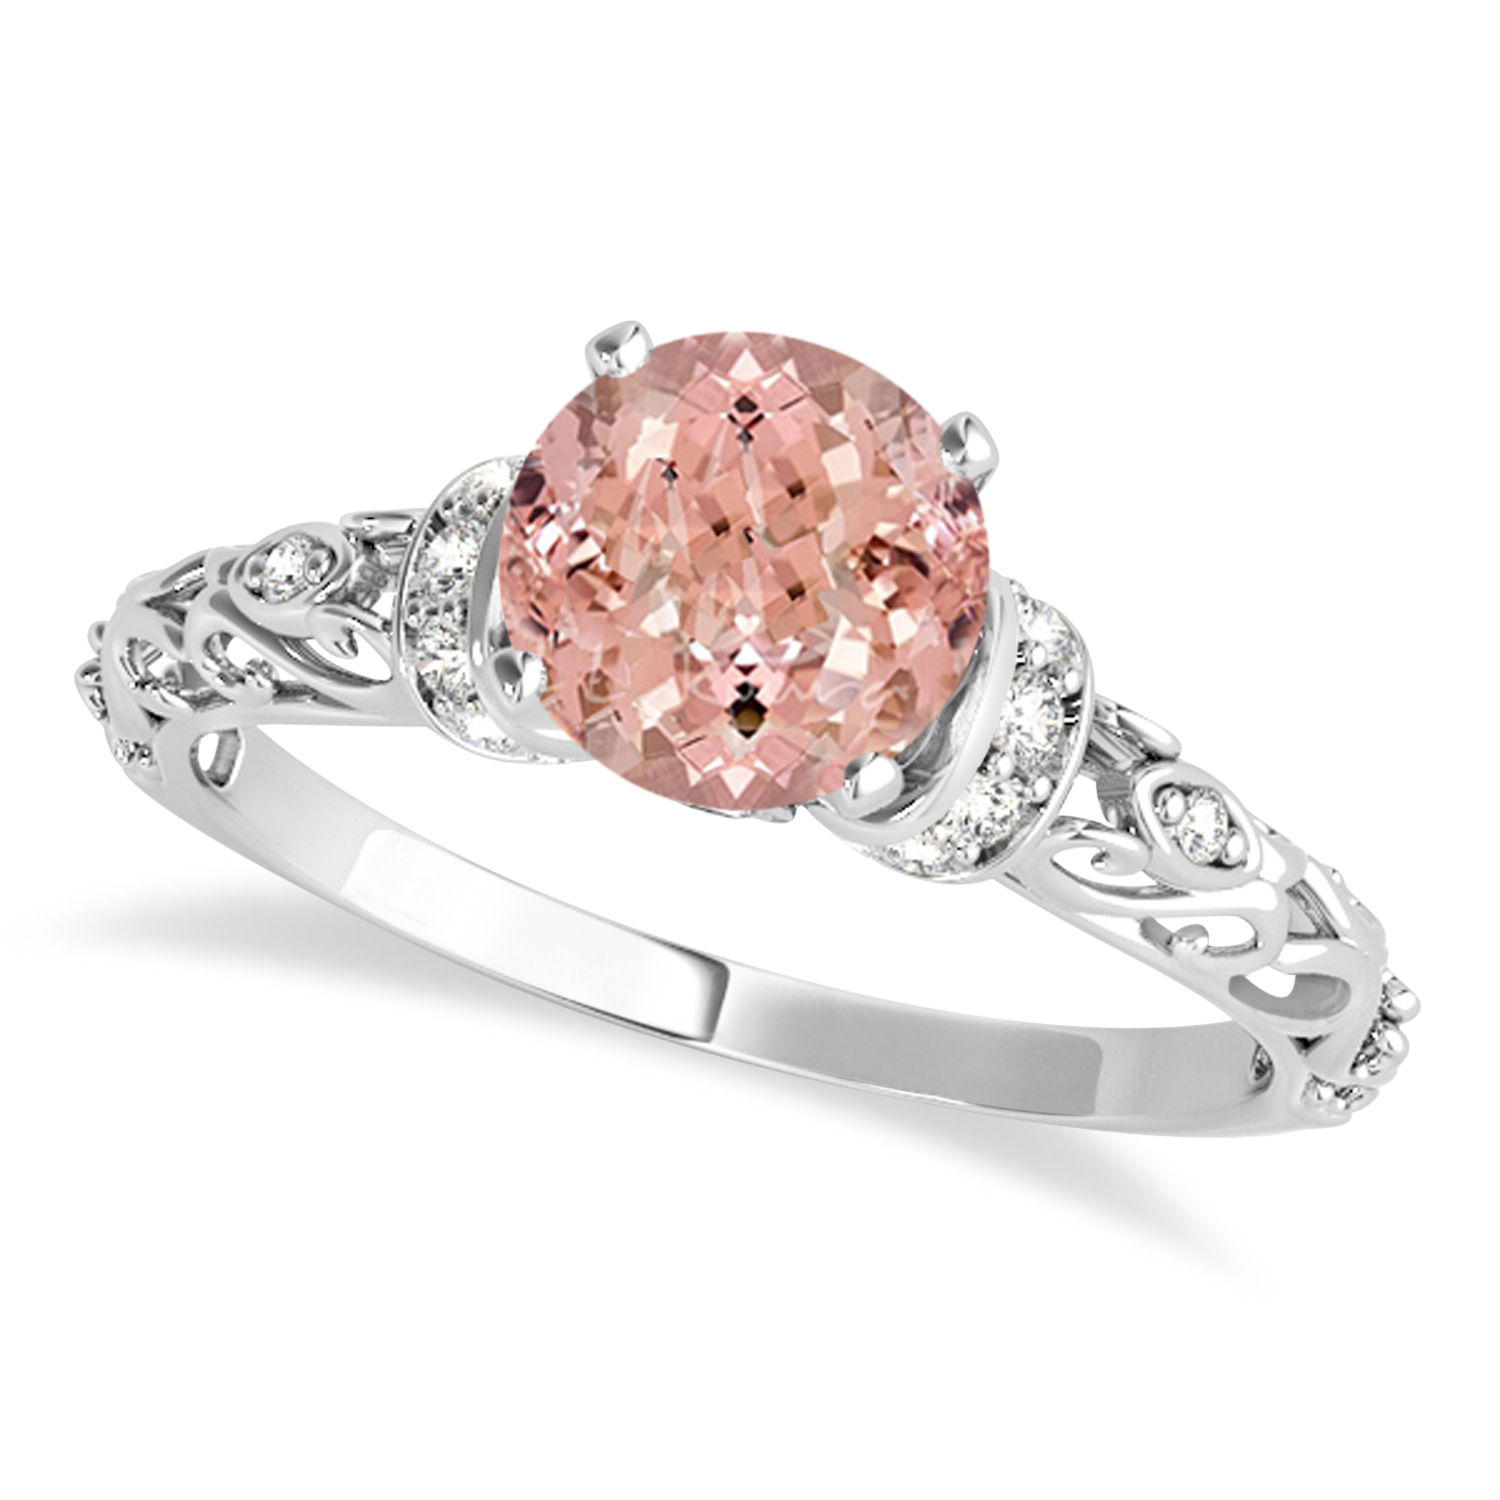 Morganite & Diamond Antique Style Engagement Ring 14k White Gold (1.12ct)